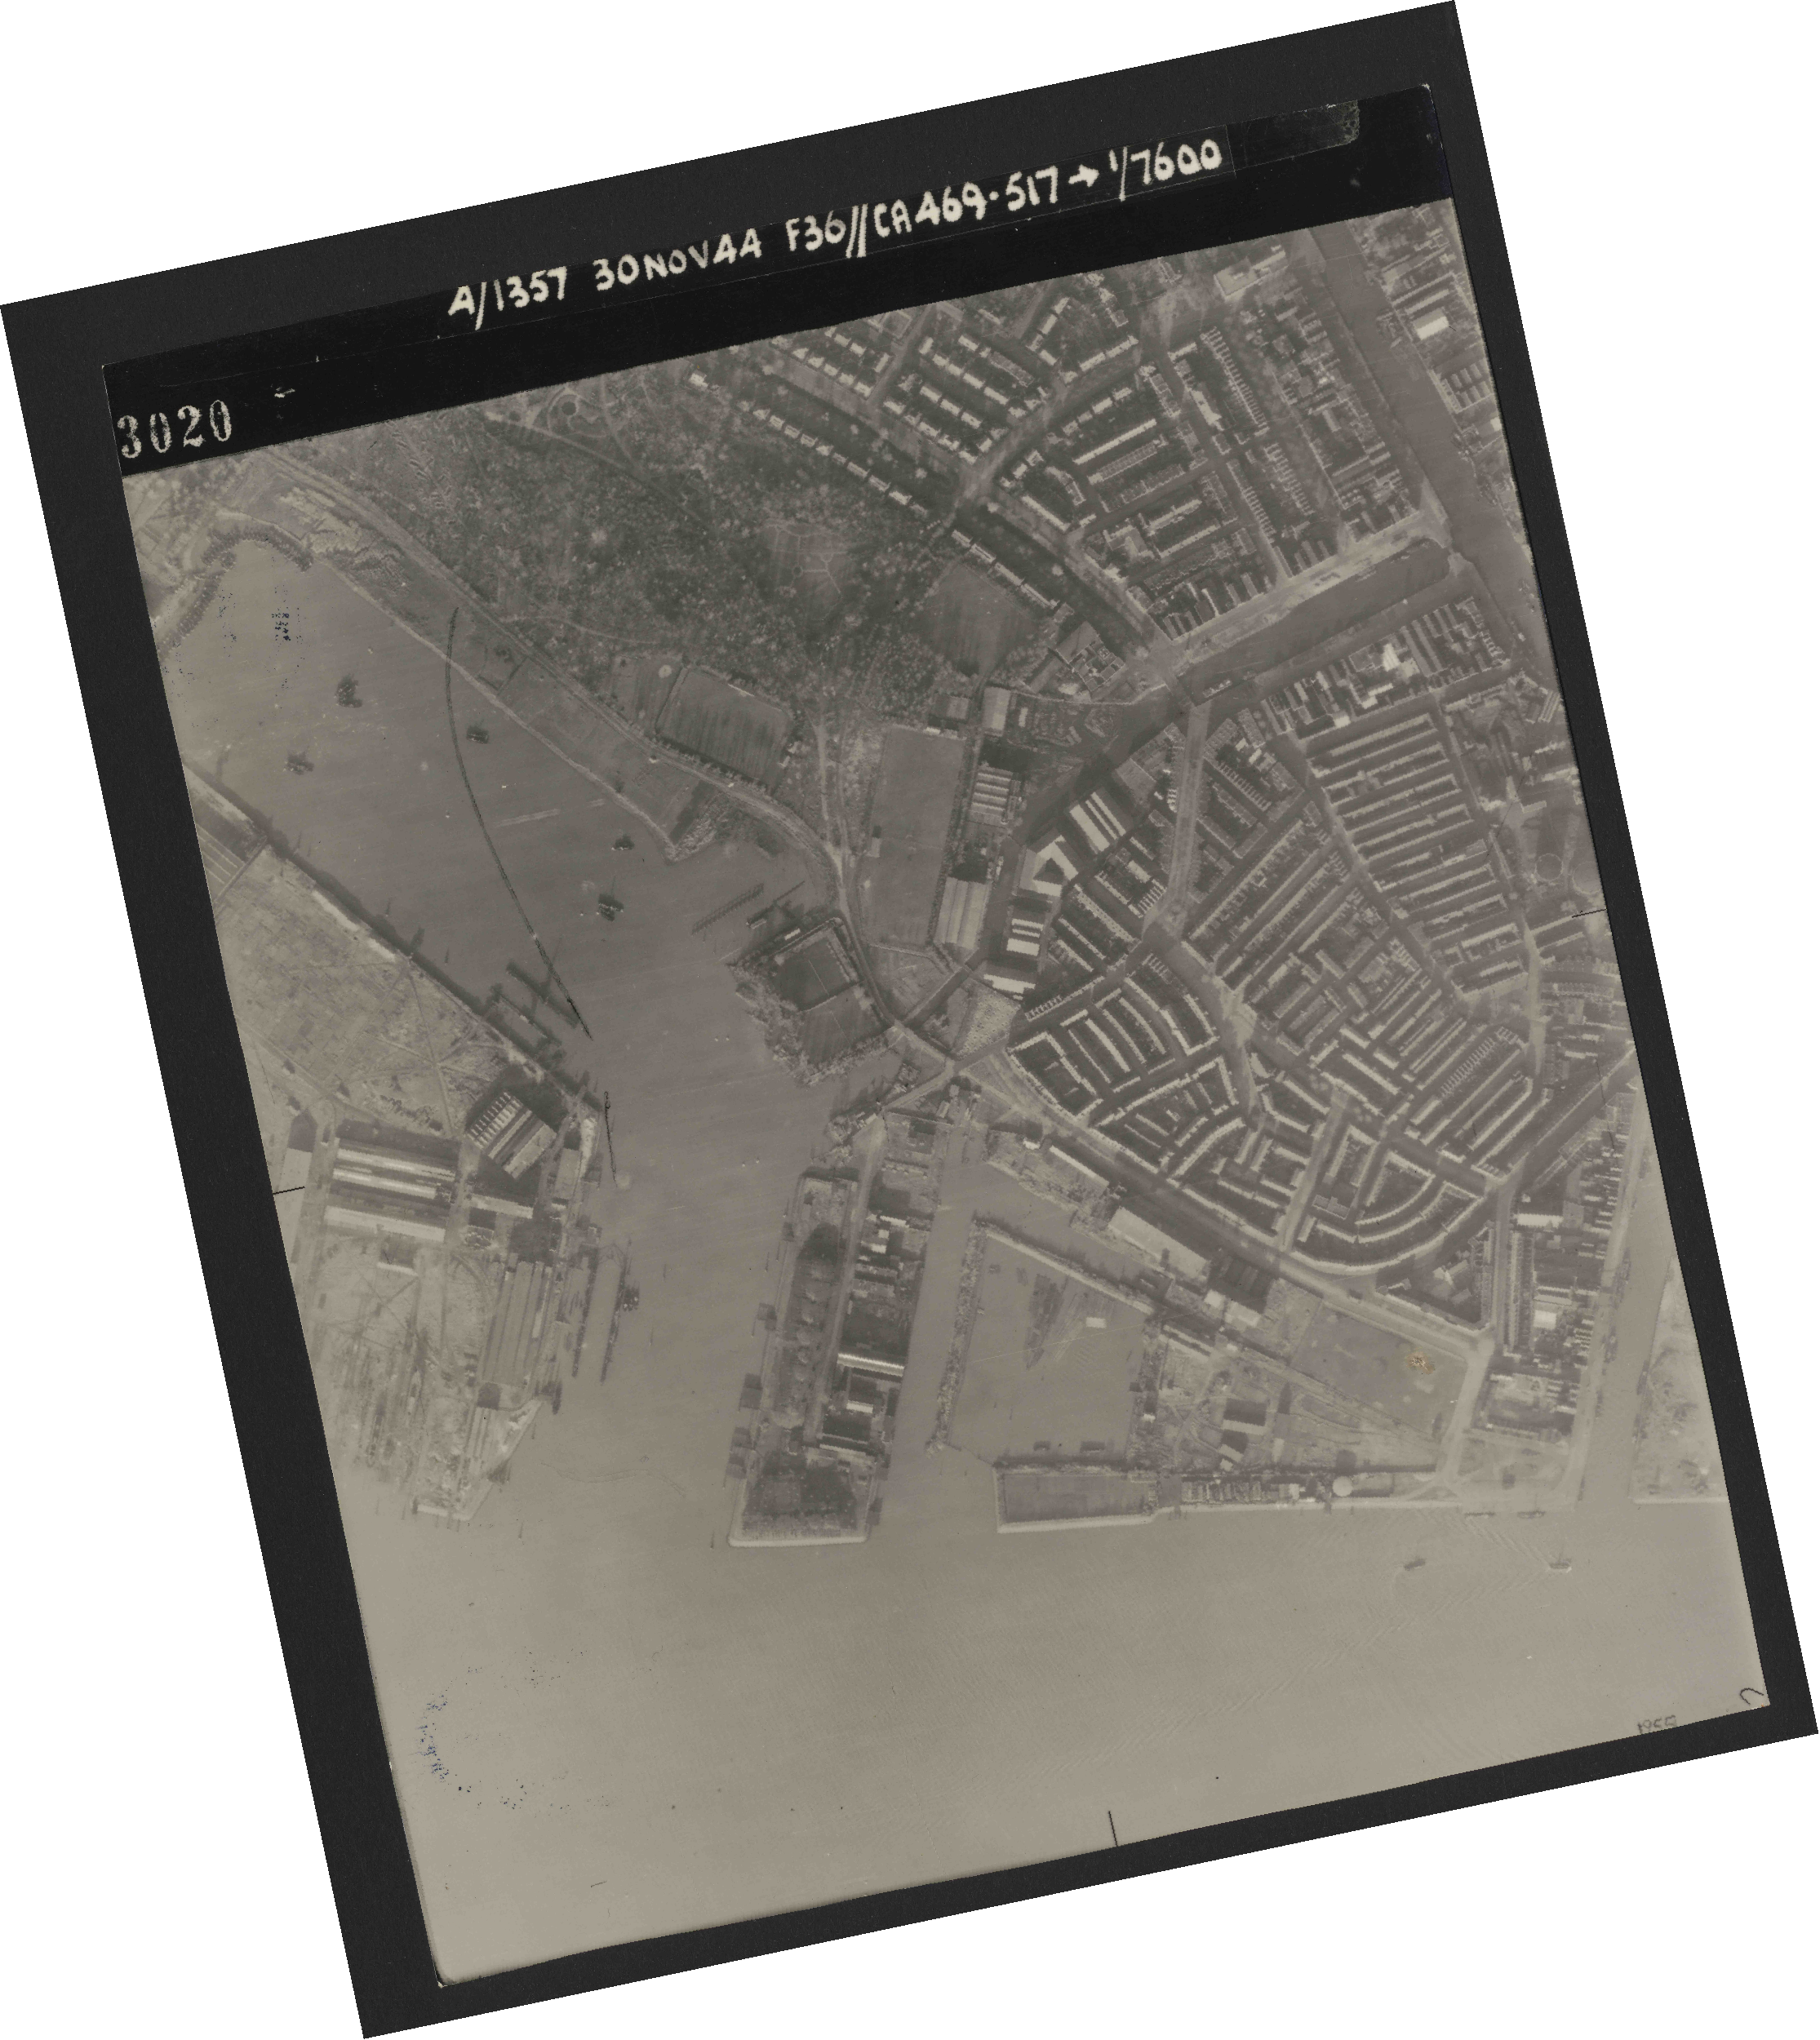 Collection RAF aerial photos 1940-1945 - flight 259, run 03, photo 3020